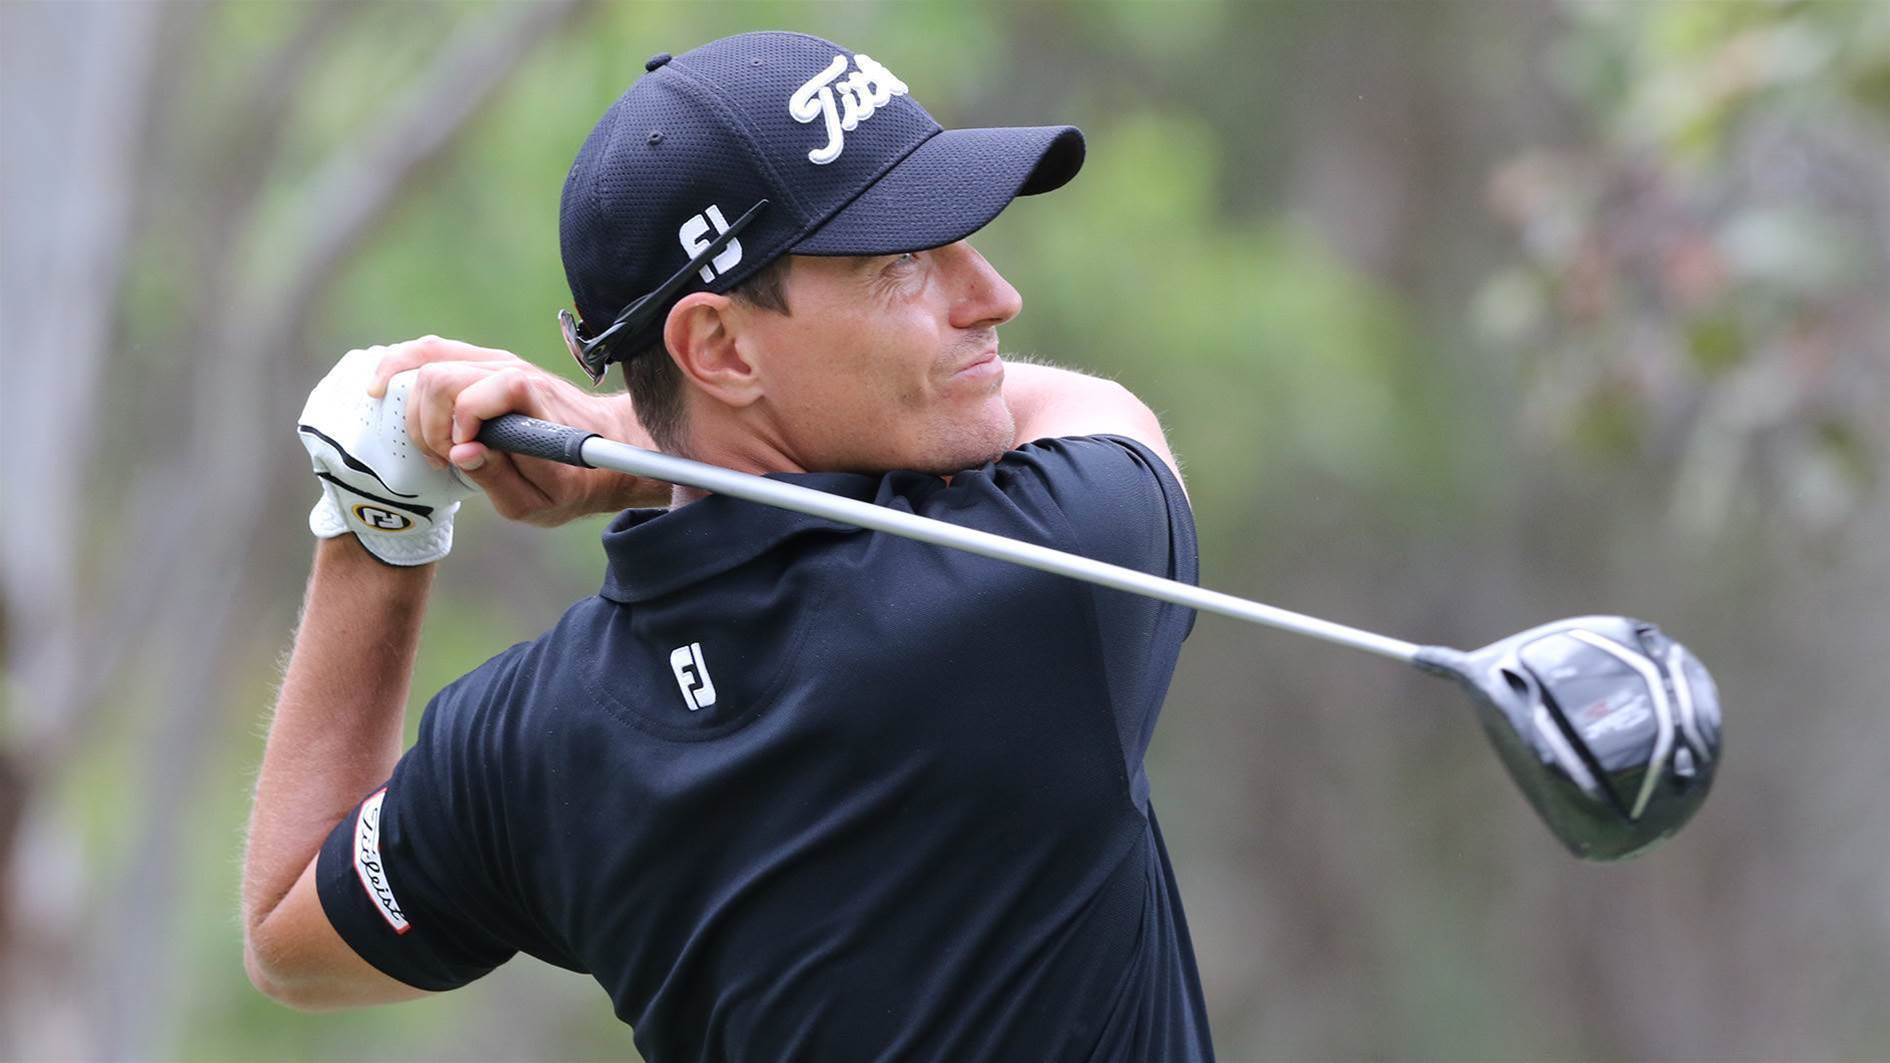 NSW OPEN: Scrivener the man to beat at Twin Creeks